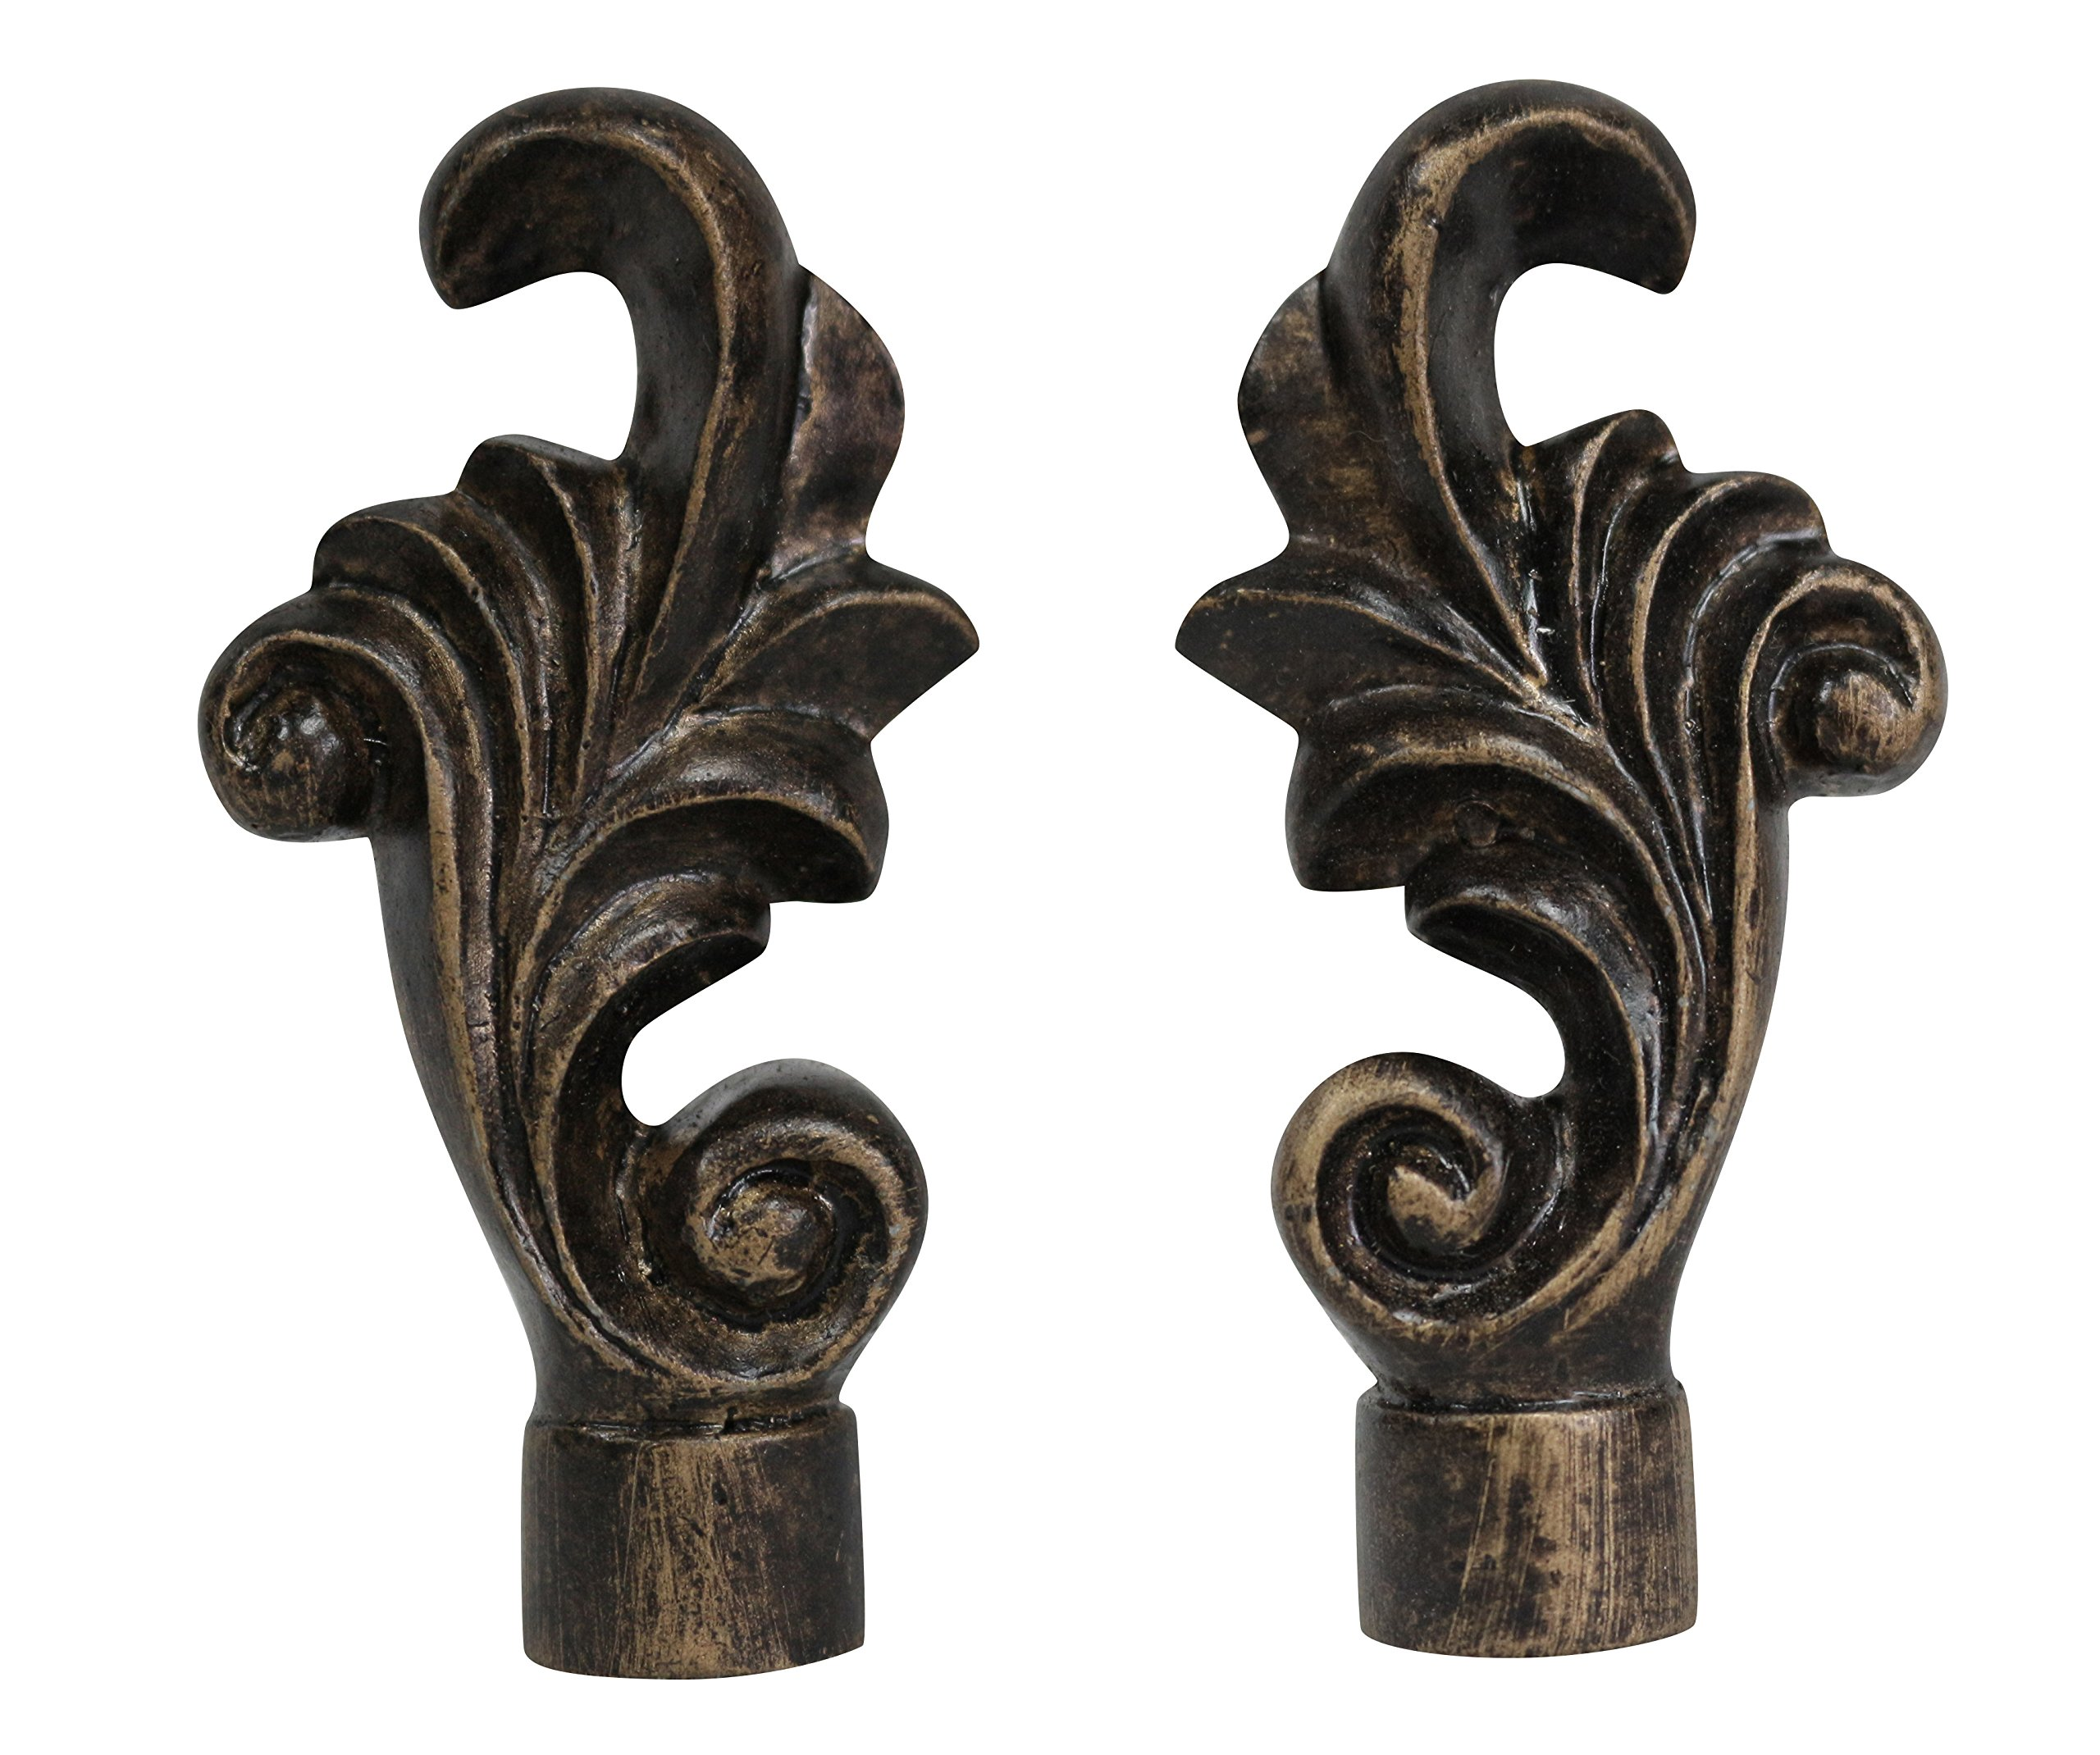 Urbanest Set of 2 Loire Lamp Finial, 3-inch Tall, Antique Bronze